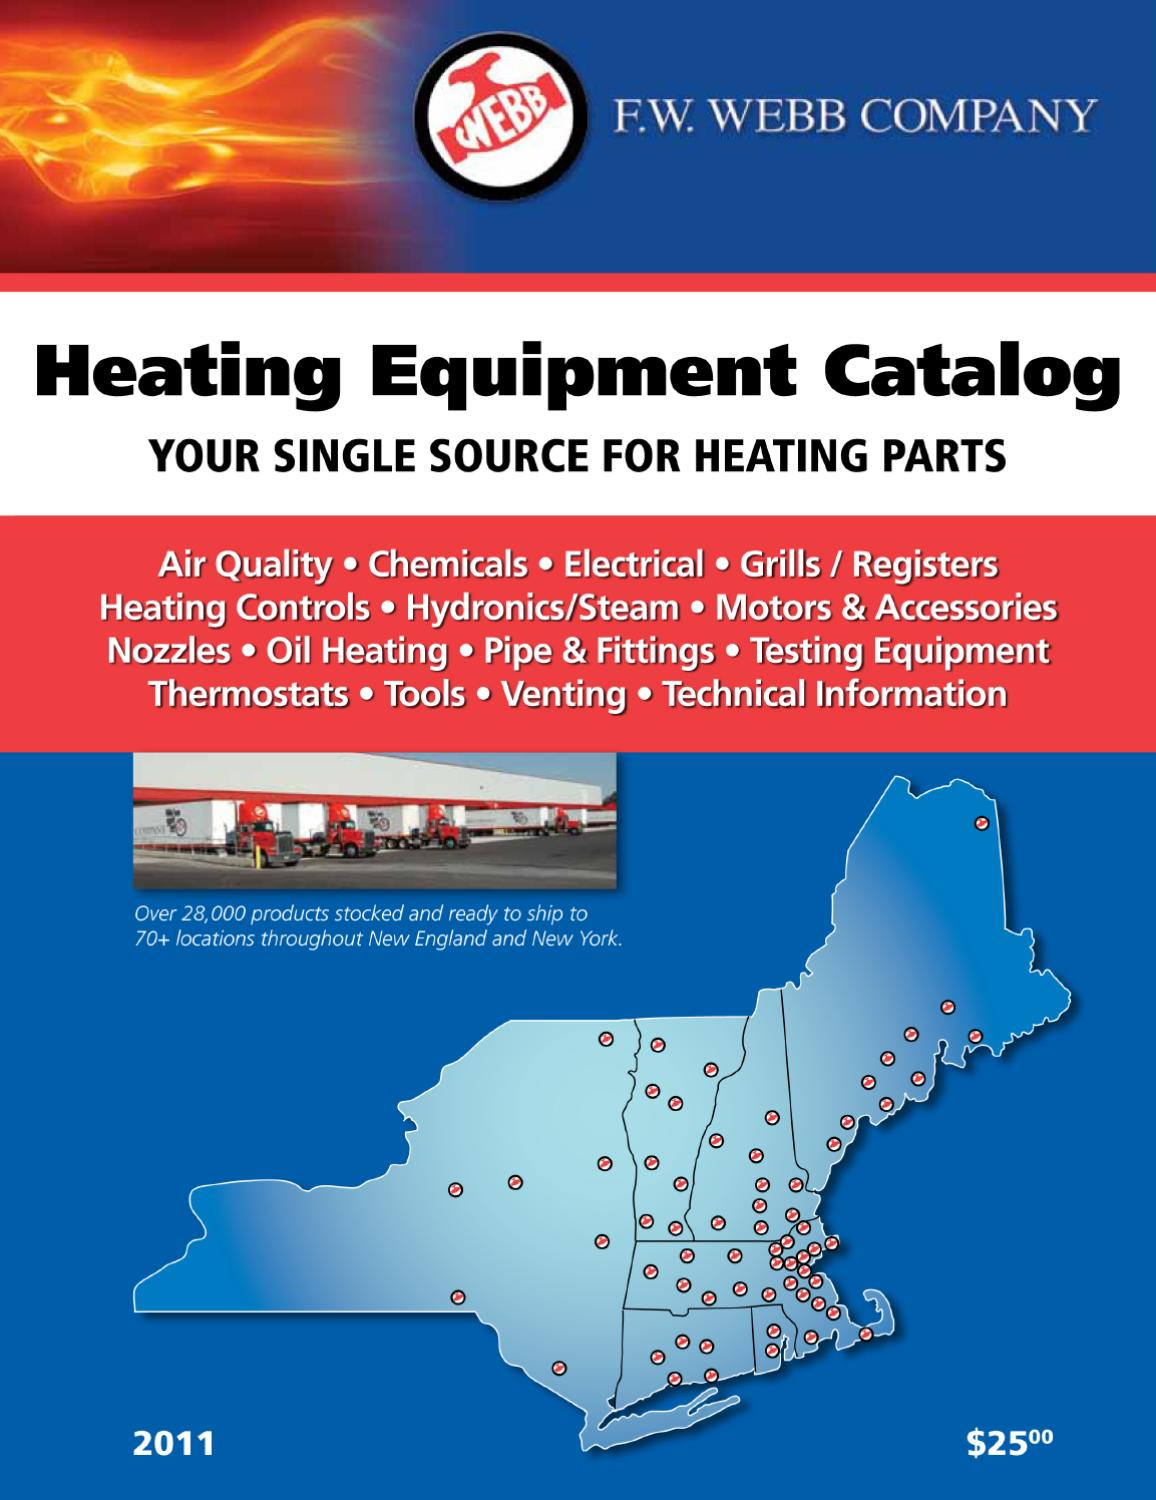 2011 Heating Catalog By Fw Webb Company Issuu Switch Wizard 3way Electrical Wiring Tester